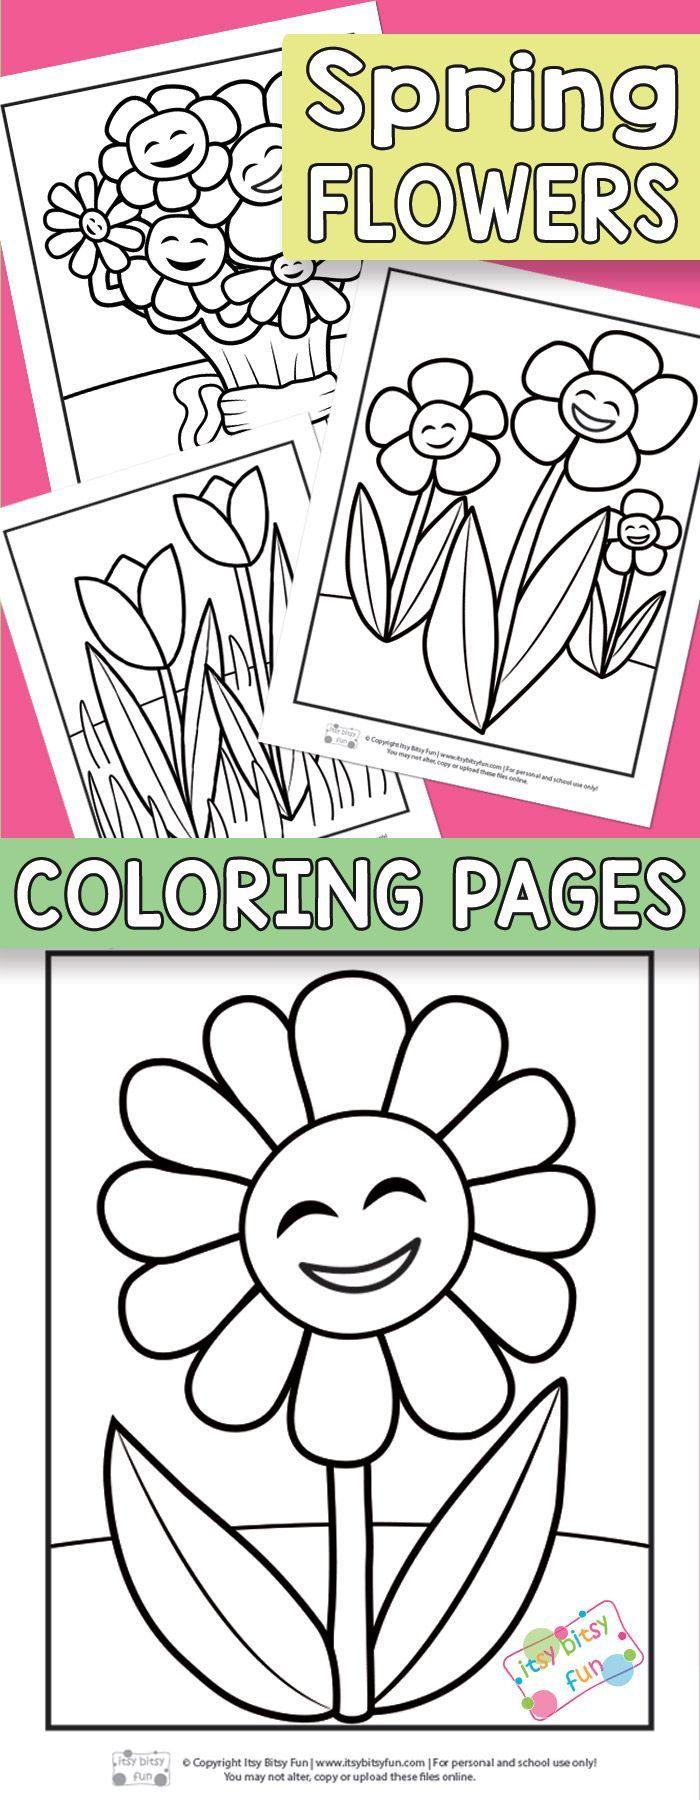 Flower Coloring Pages For Kids | Spring | Spring Crafts For